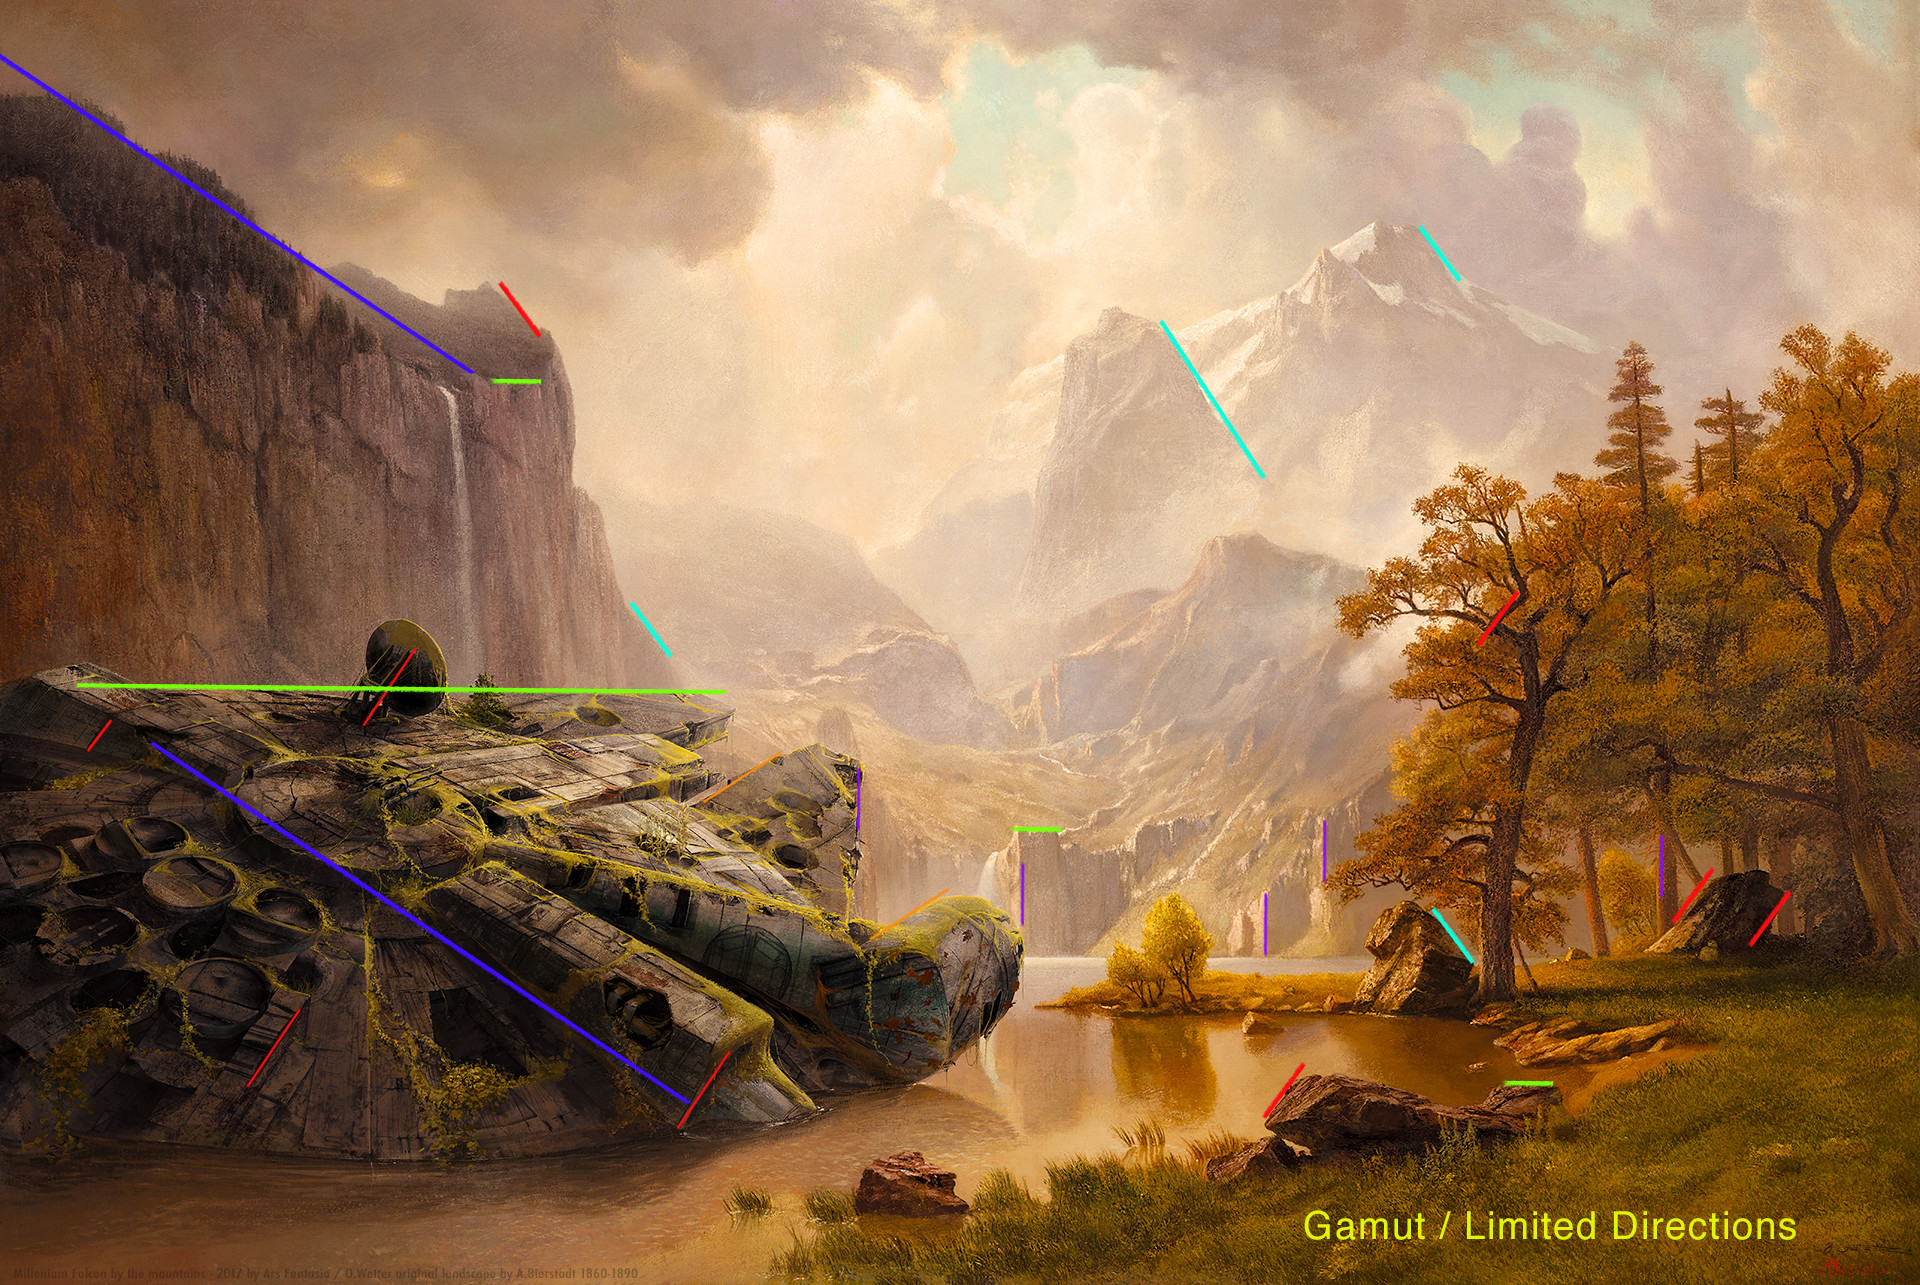 Oliver wetter composition findings gamut 1920x1200px watermarked web abandoned millenium falcon at sierra nevada